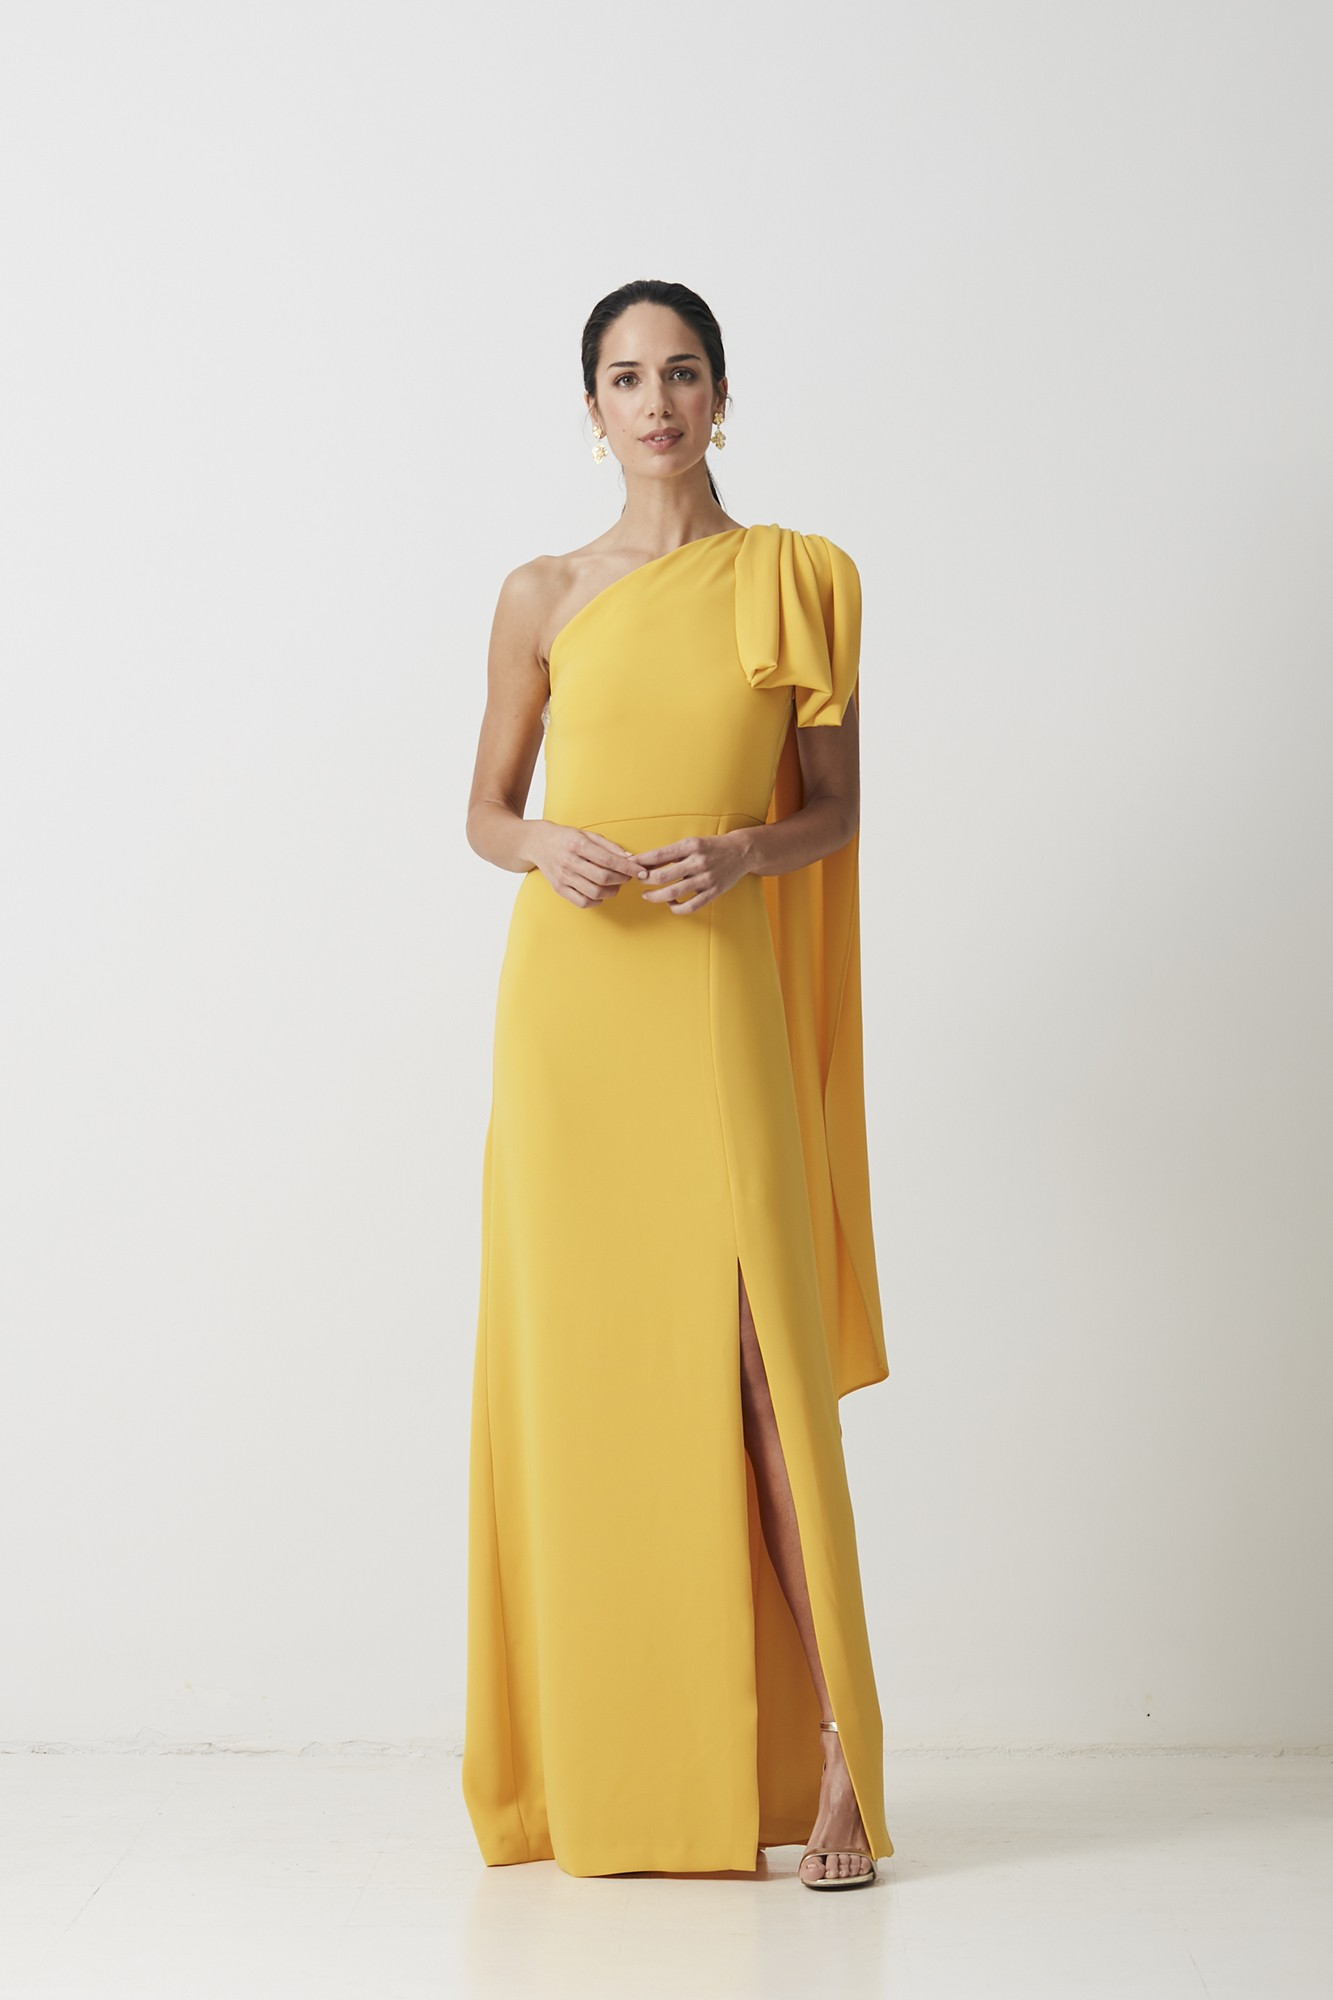 MARIO YELLOW DRESS